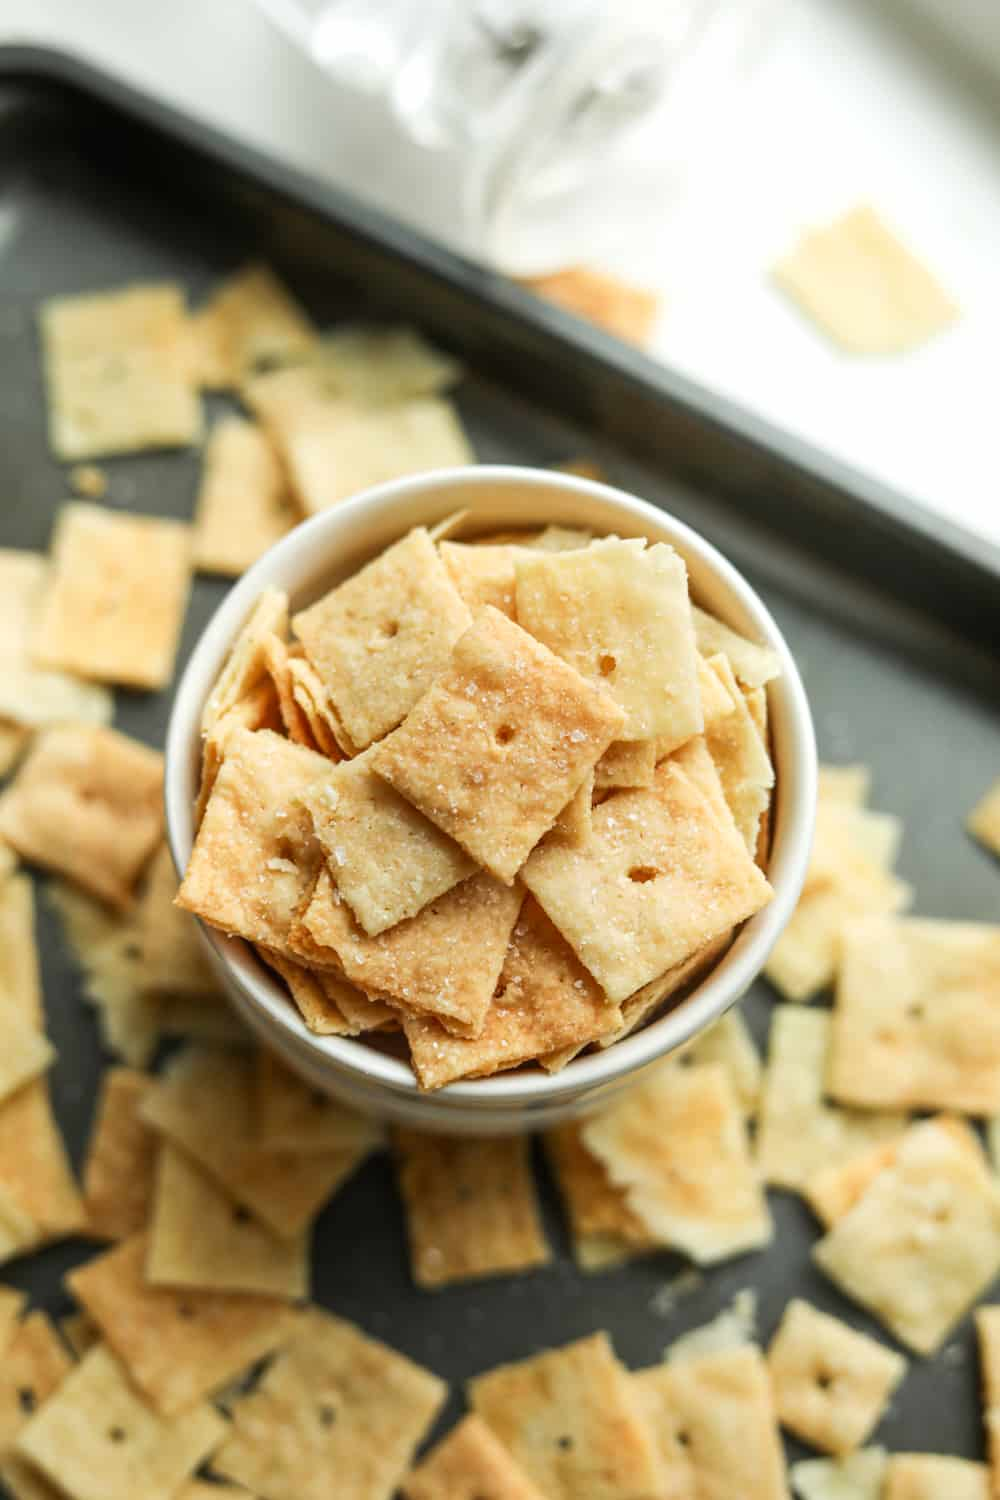 Keto cheese crackers in a bowl.